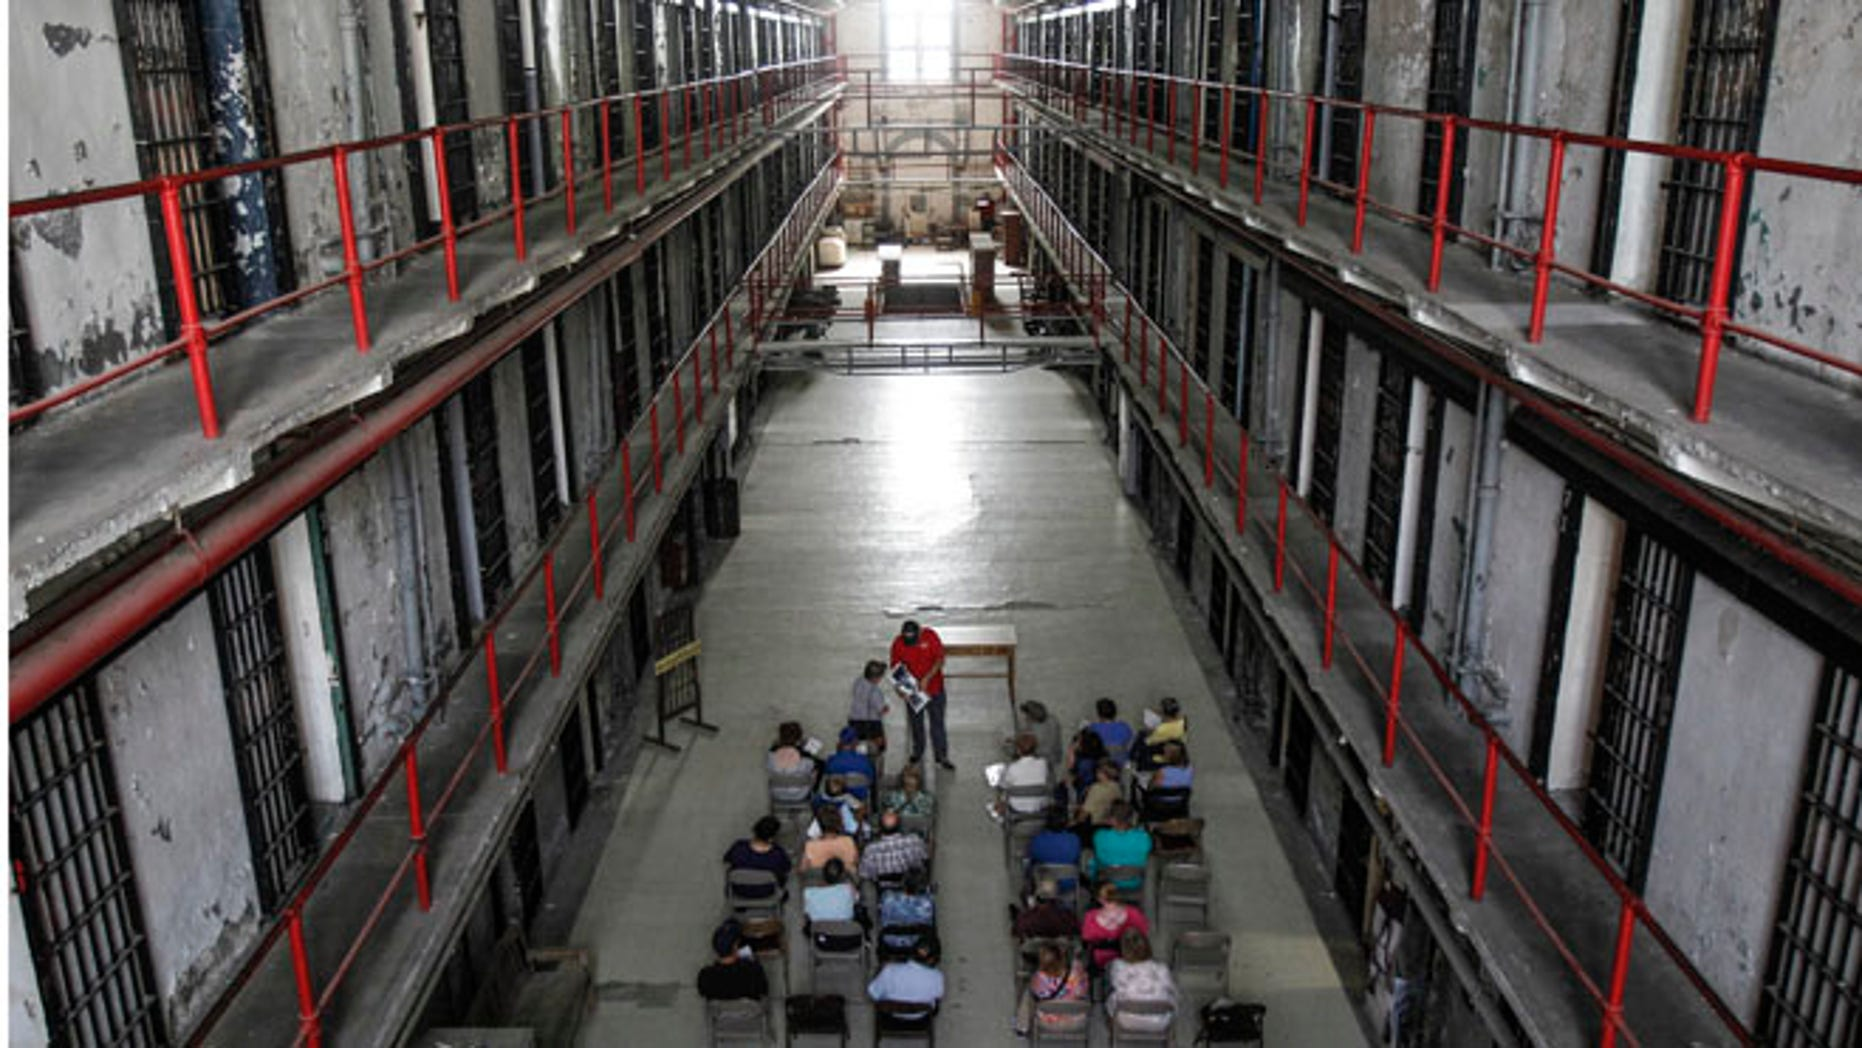 FILE: Sept. 12, 2013: People tour the decommissioned Missouri State Penitentiary,  in Jefferson City, Missouri.